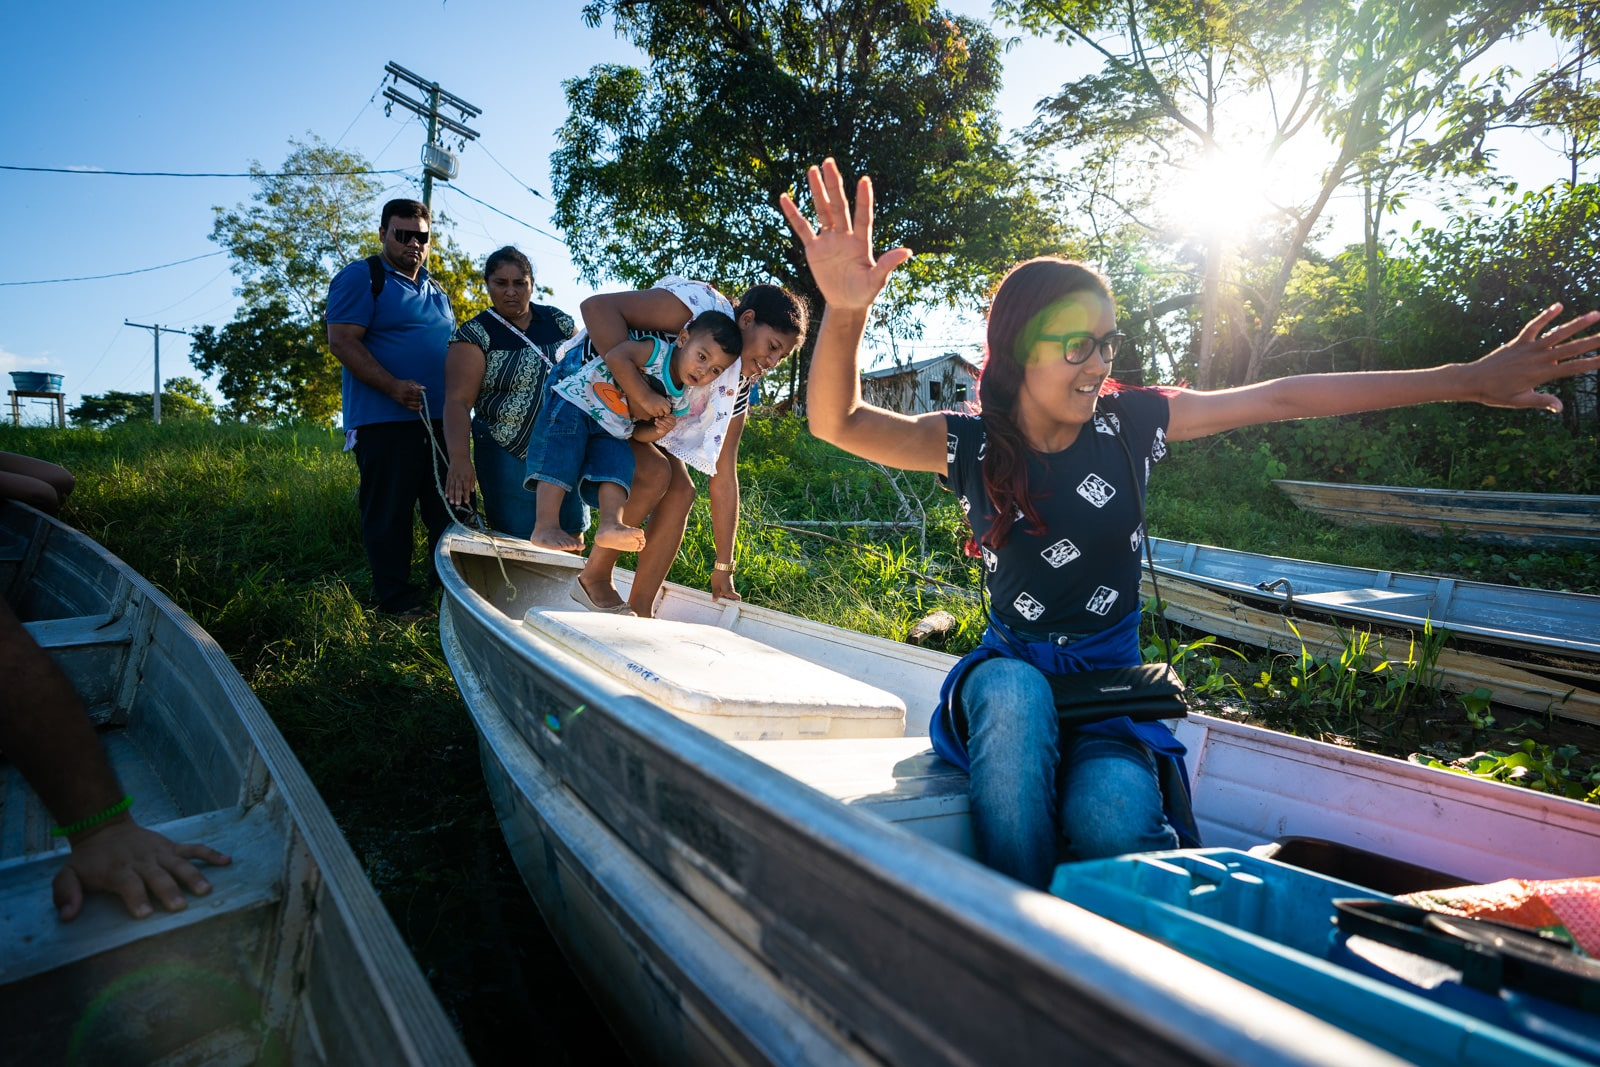 OneSight's mobile eye care clinic in the Brazilian Amazon - Family getting onto a boat to go home - Lost With Purpose travel blog